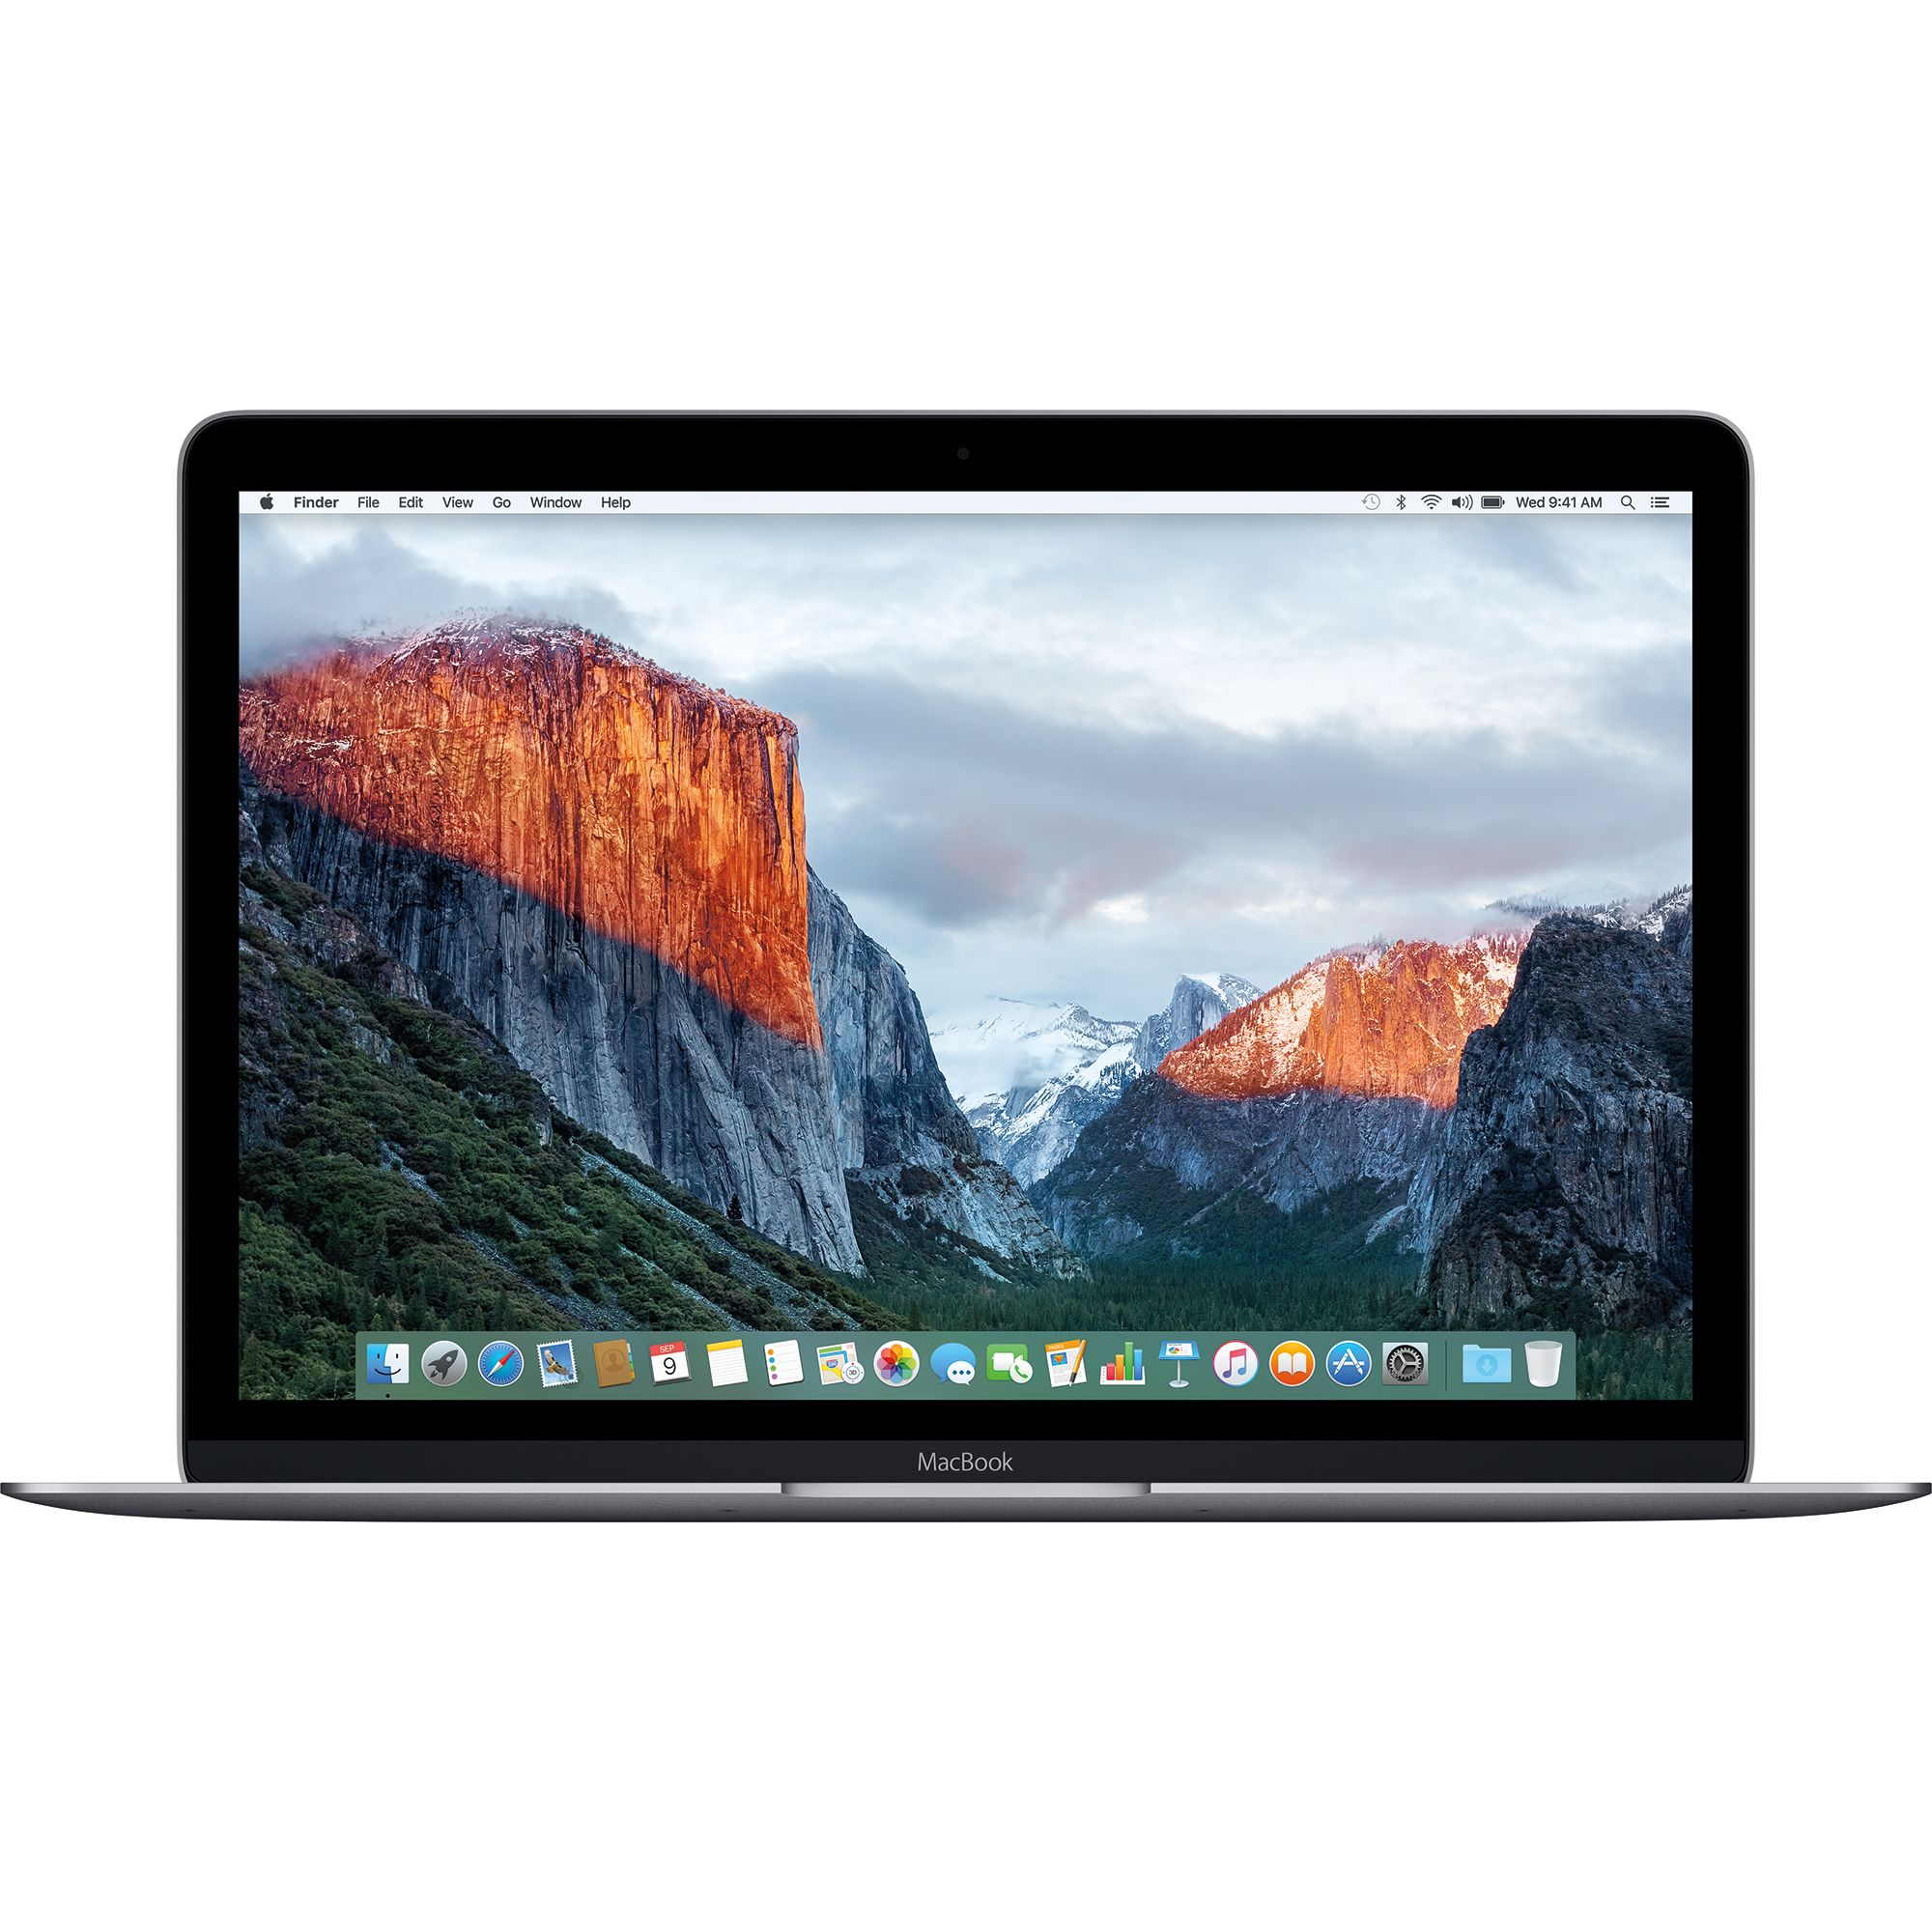 Notebook Apple MacBook Retina 12 Intel Core m3 1.2GHz RAM 8GB SSD 256GB Tastatura INT Space Grey